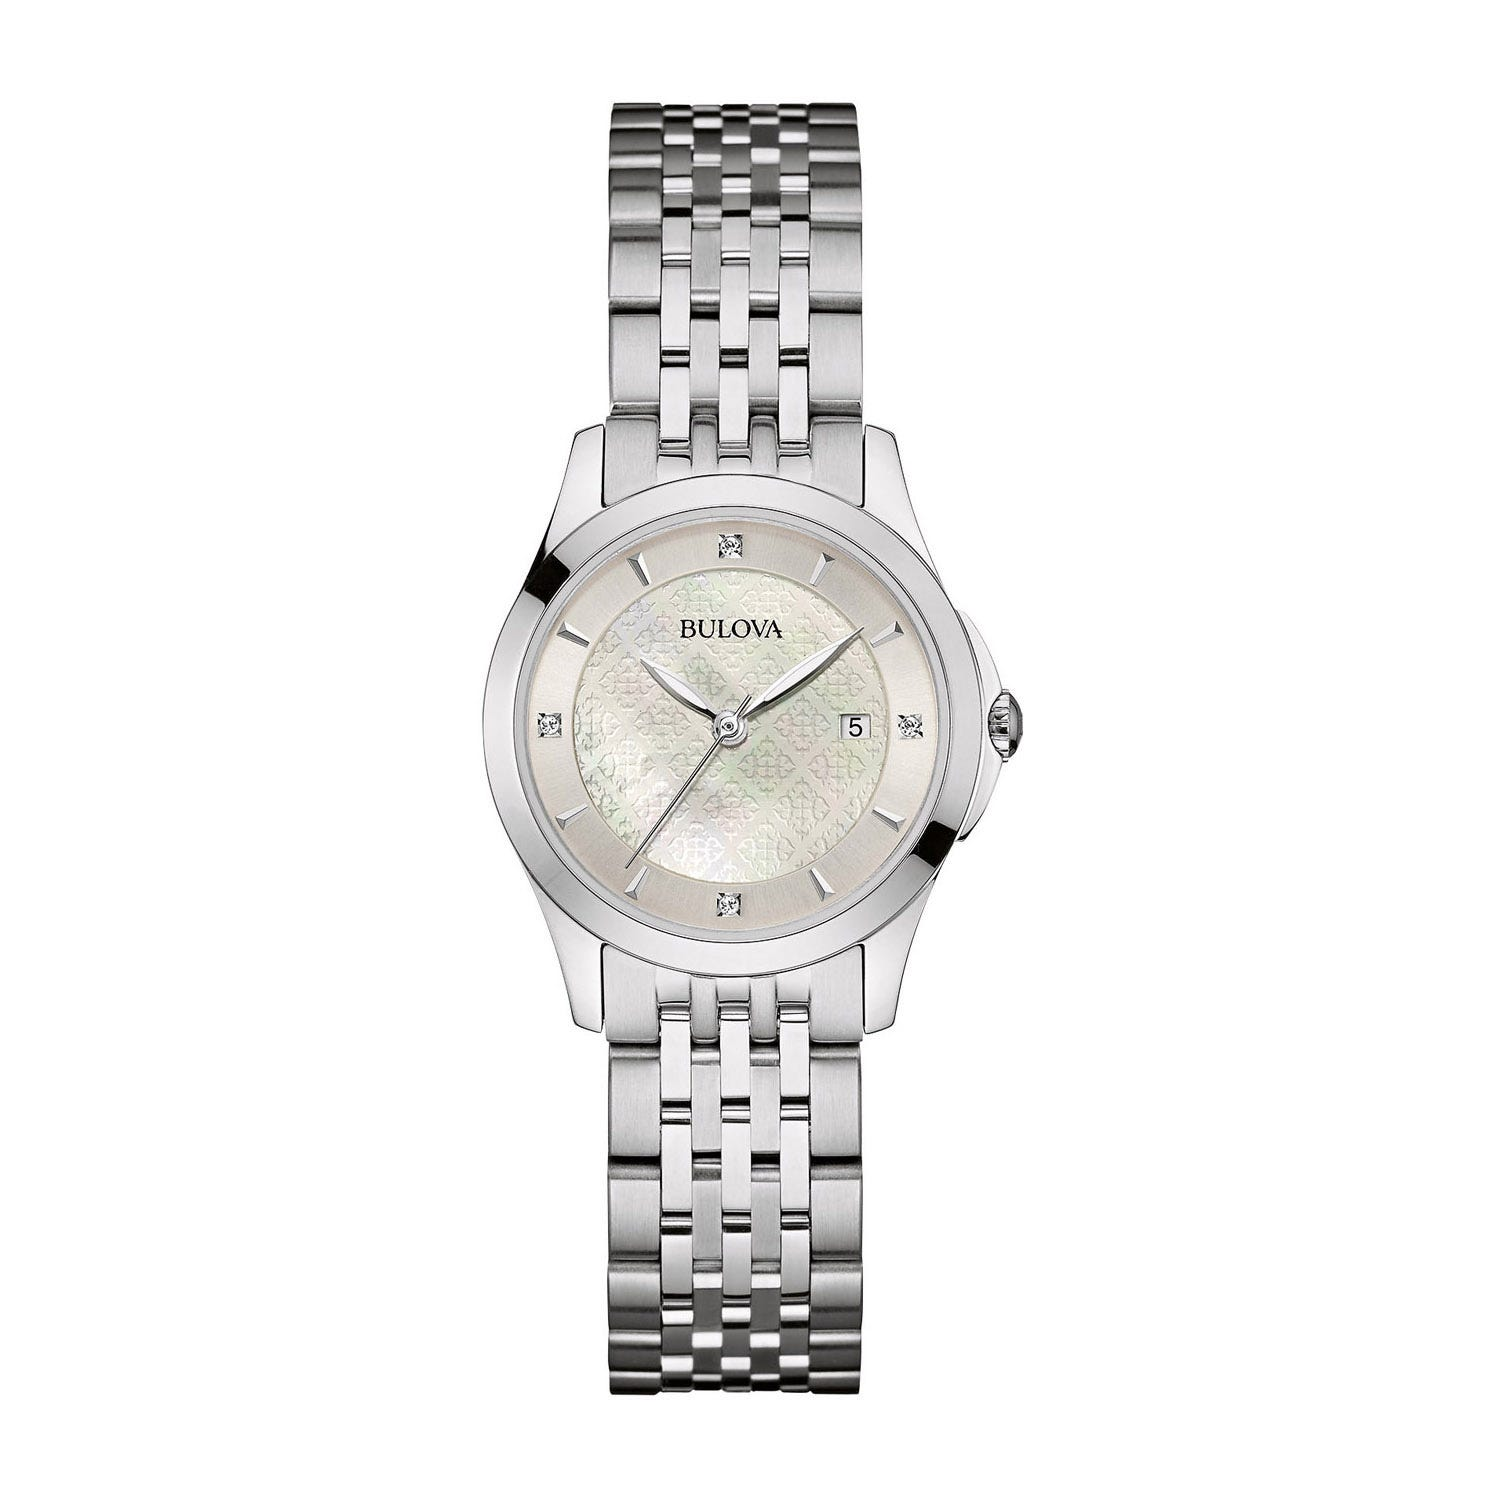 Bulova Diamonds ladies' stainless steel watch